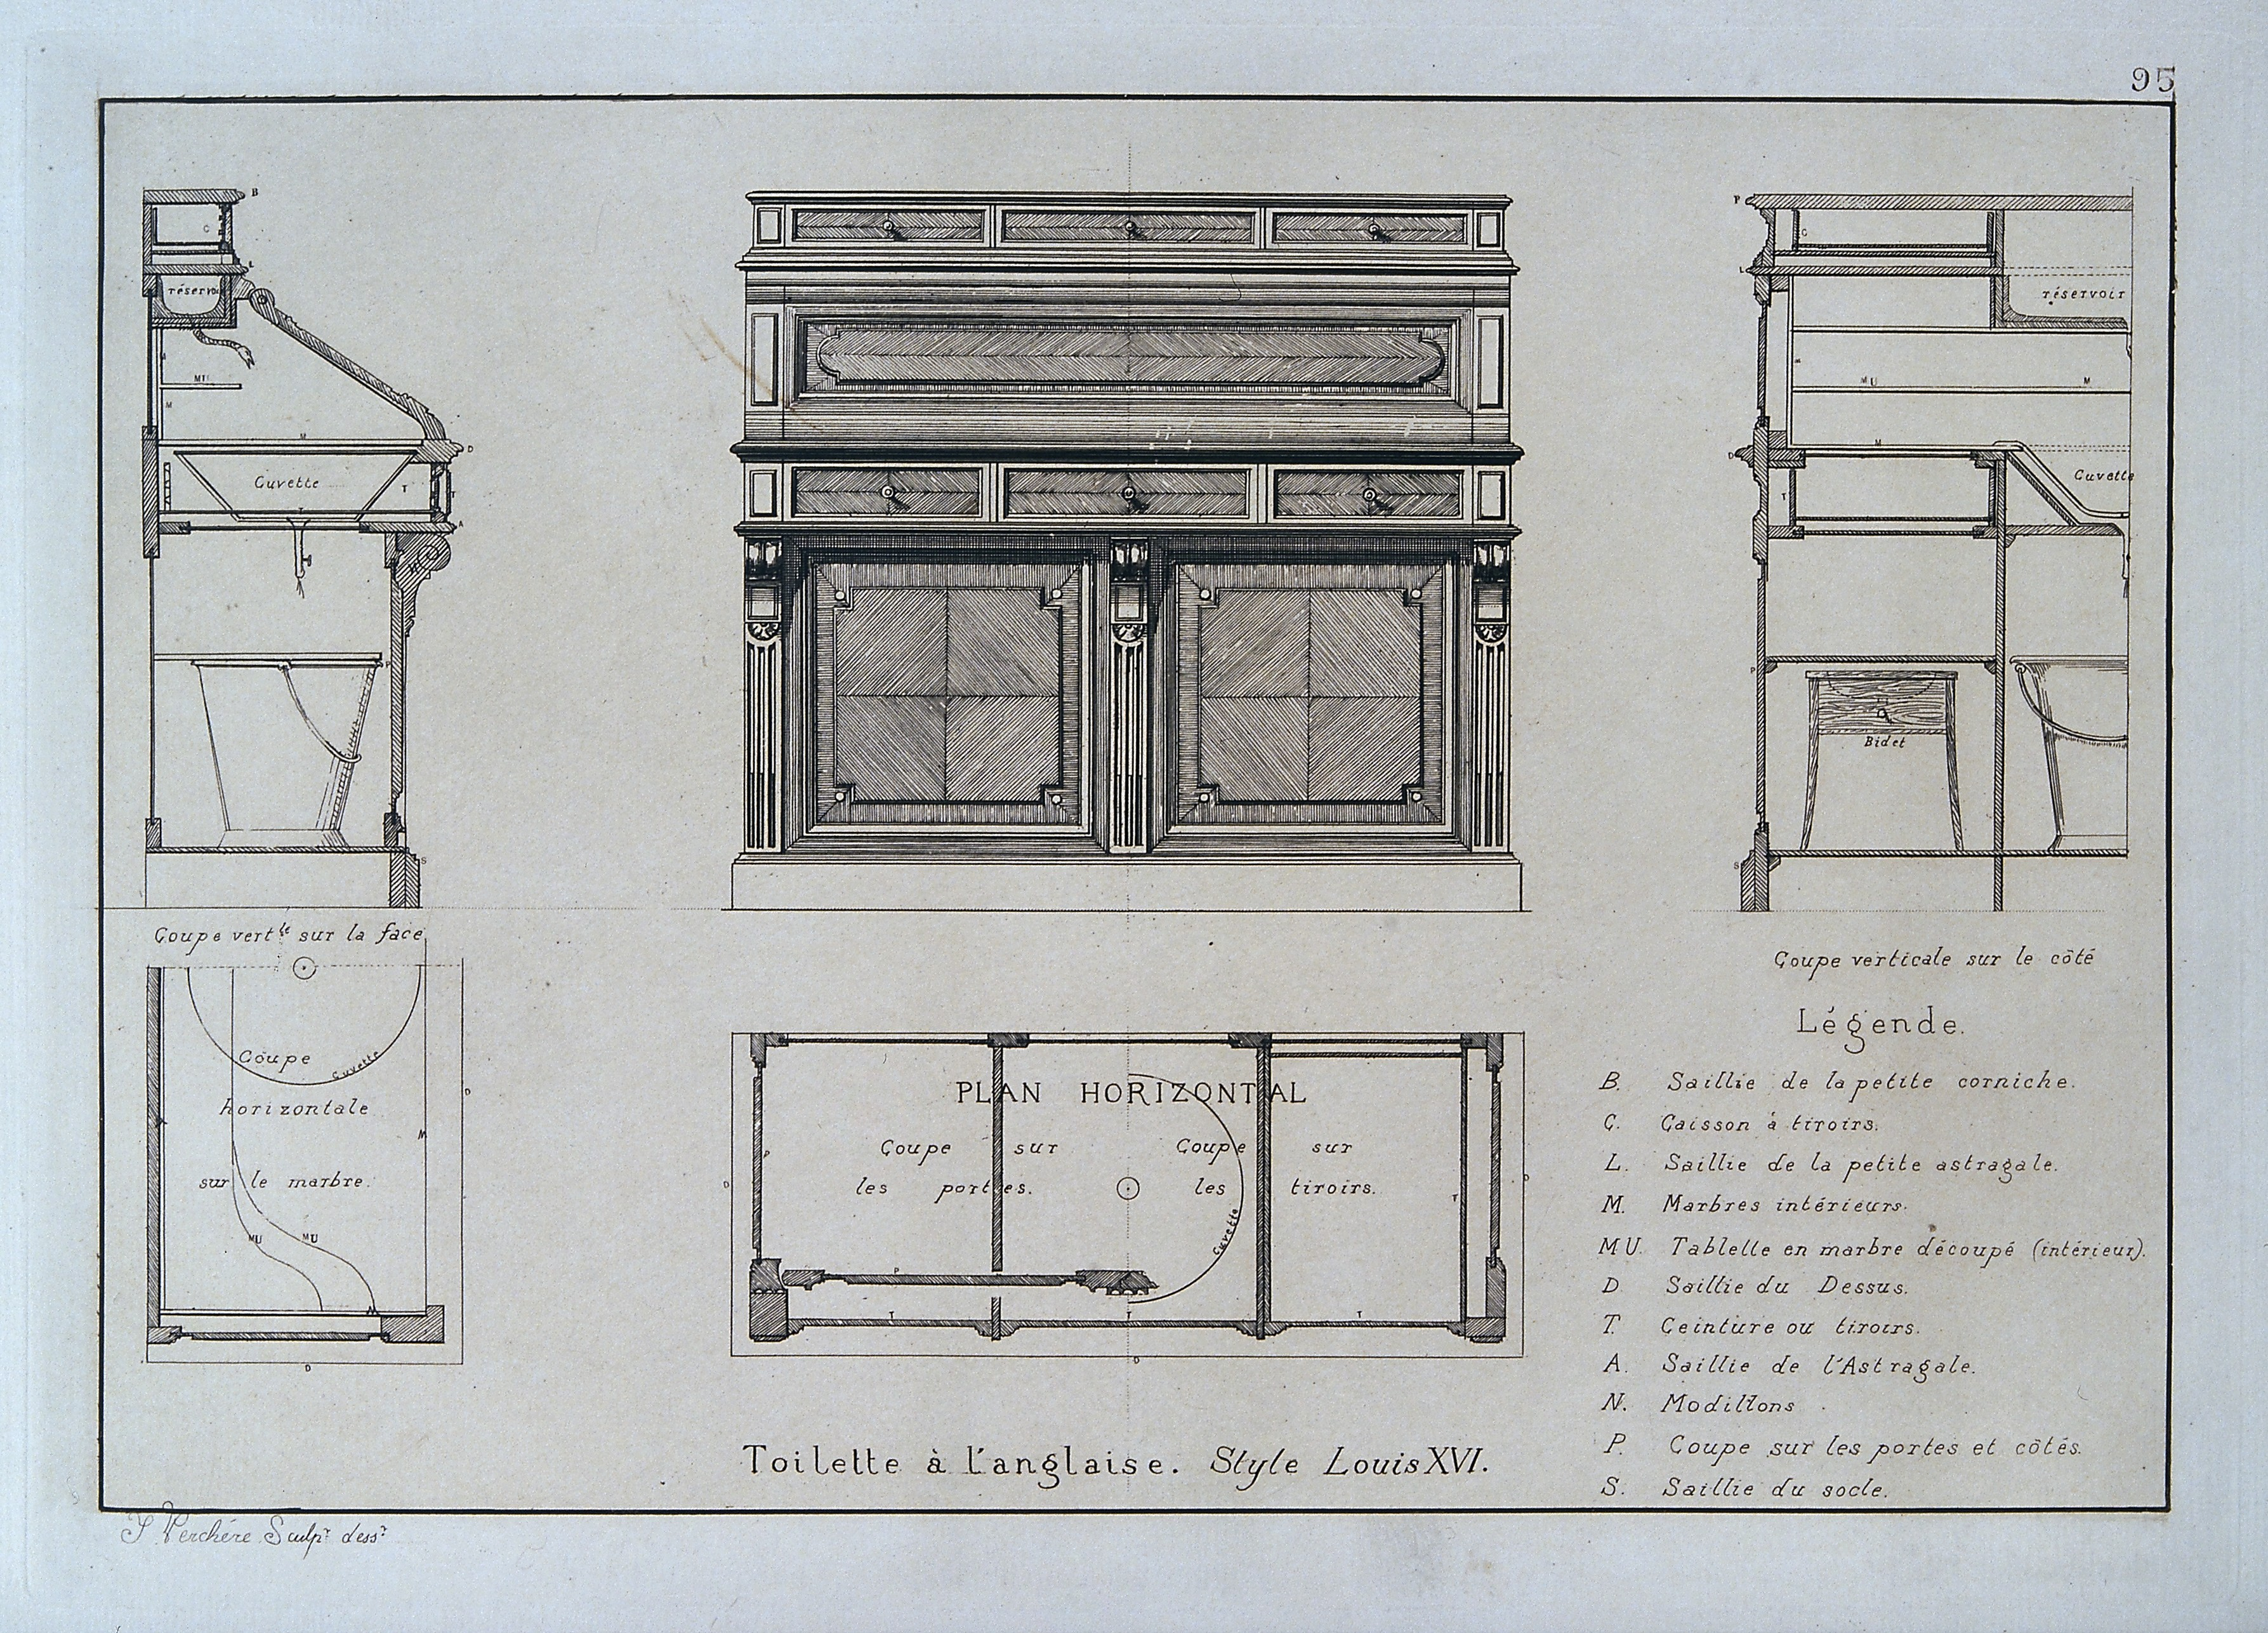 Design D'intérieur Dess File Cabinet Making Designs For A Sideboard Etching By J Verch